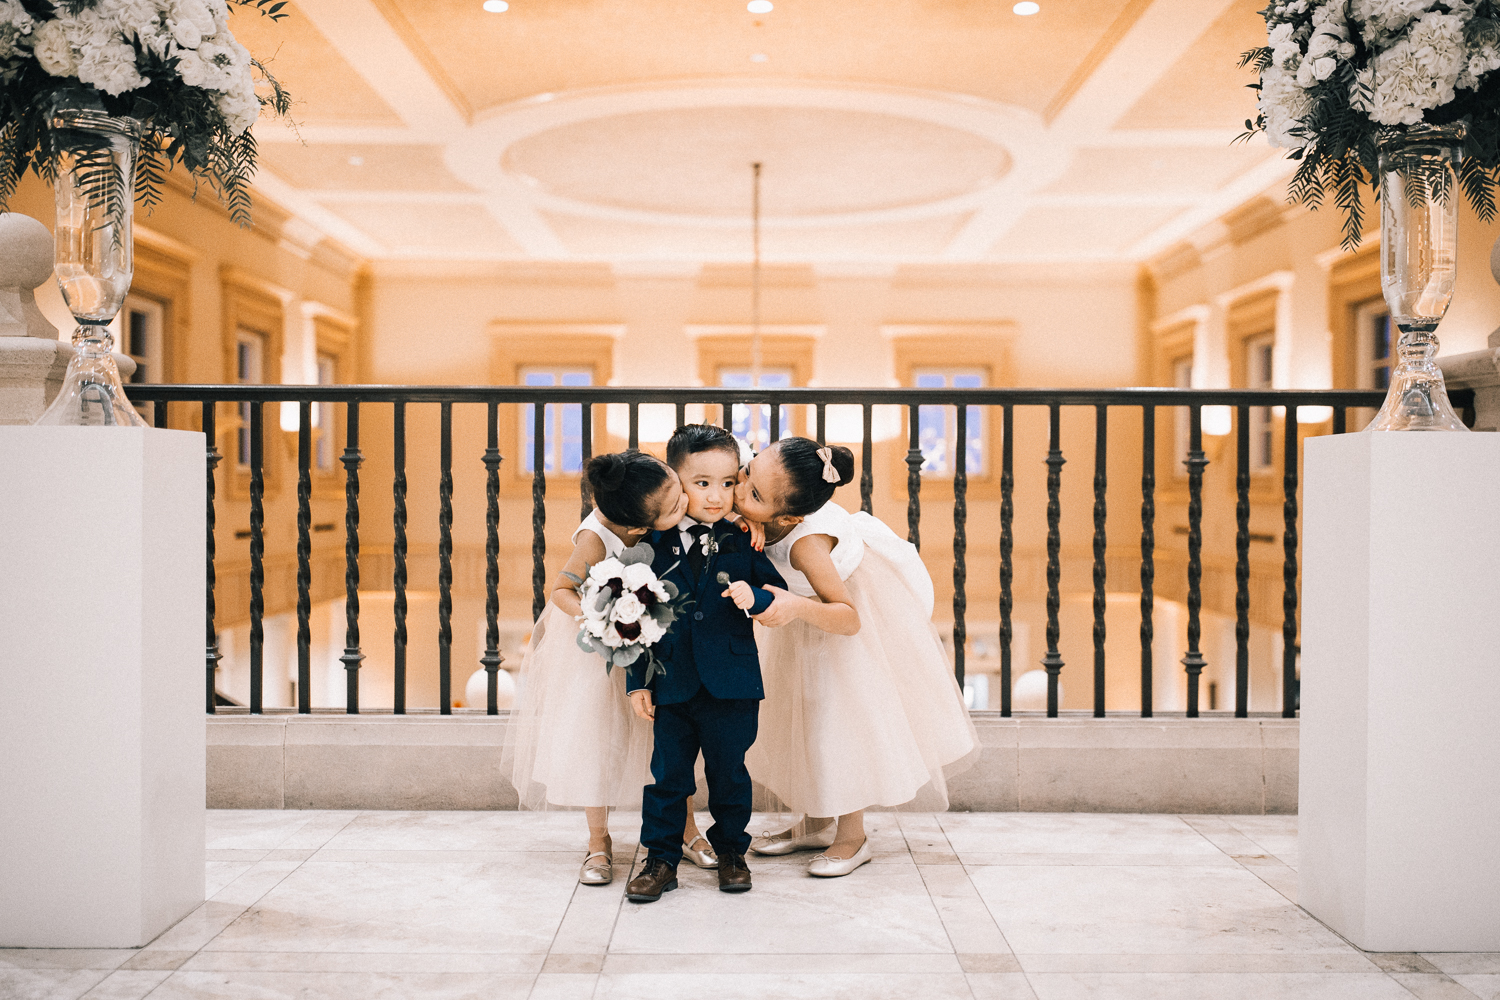 2019_01_ 202019.01.20 Santiago Wedding Blog Photos Edited For Web 0093.jpg